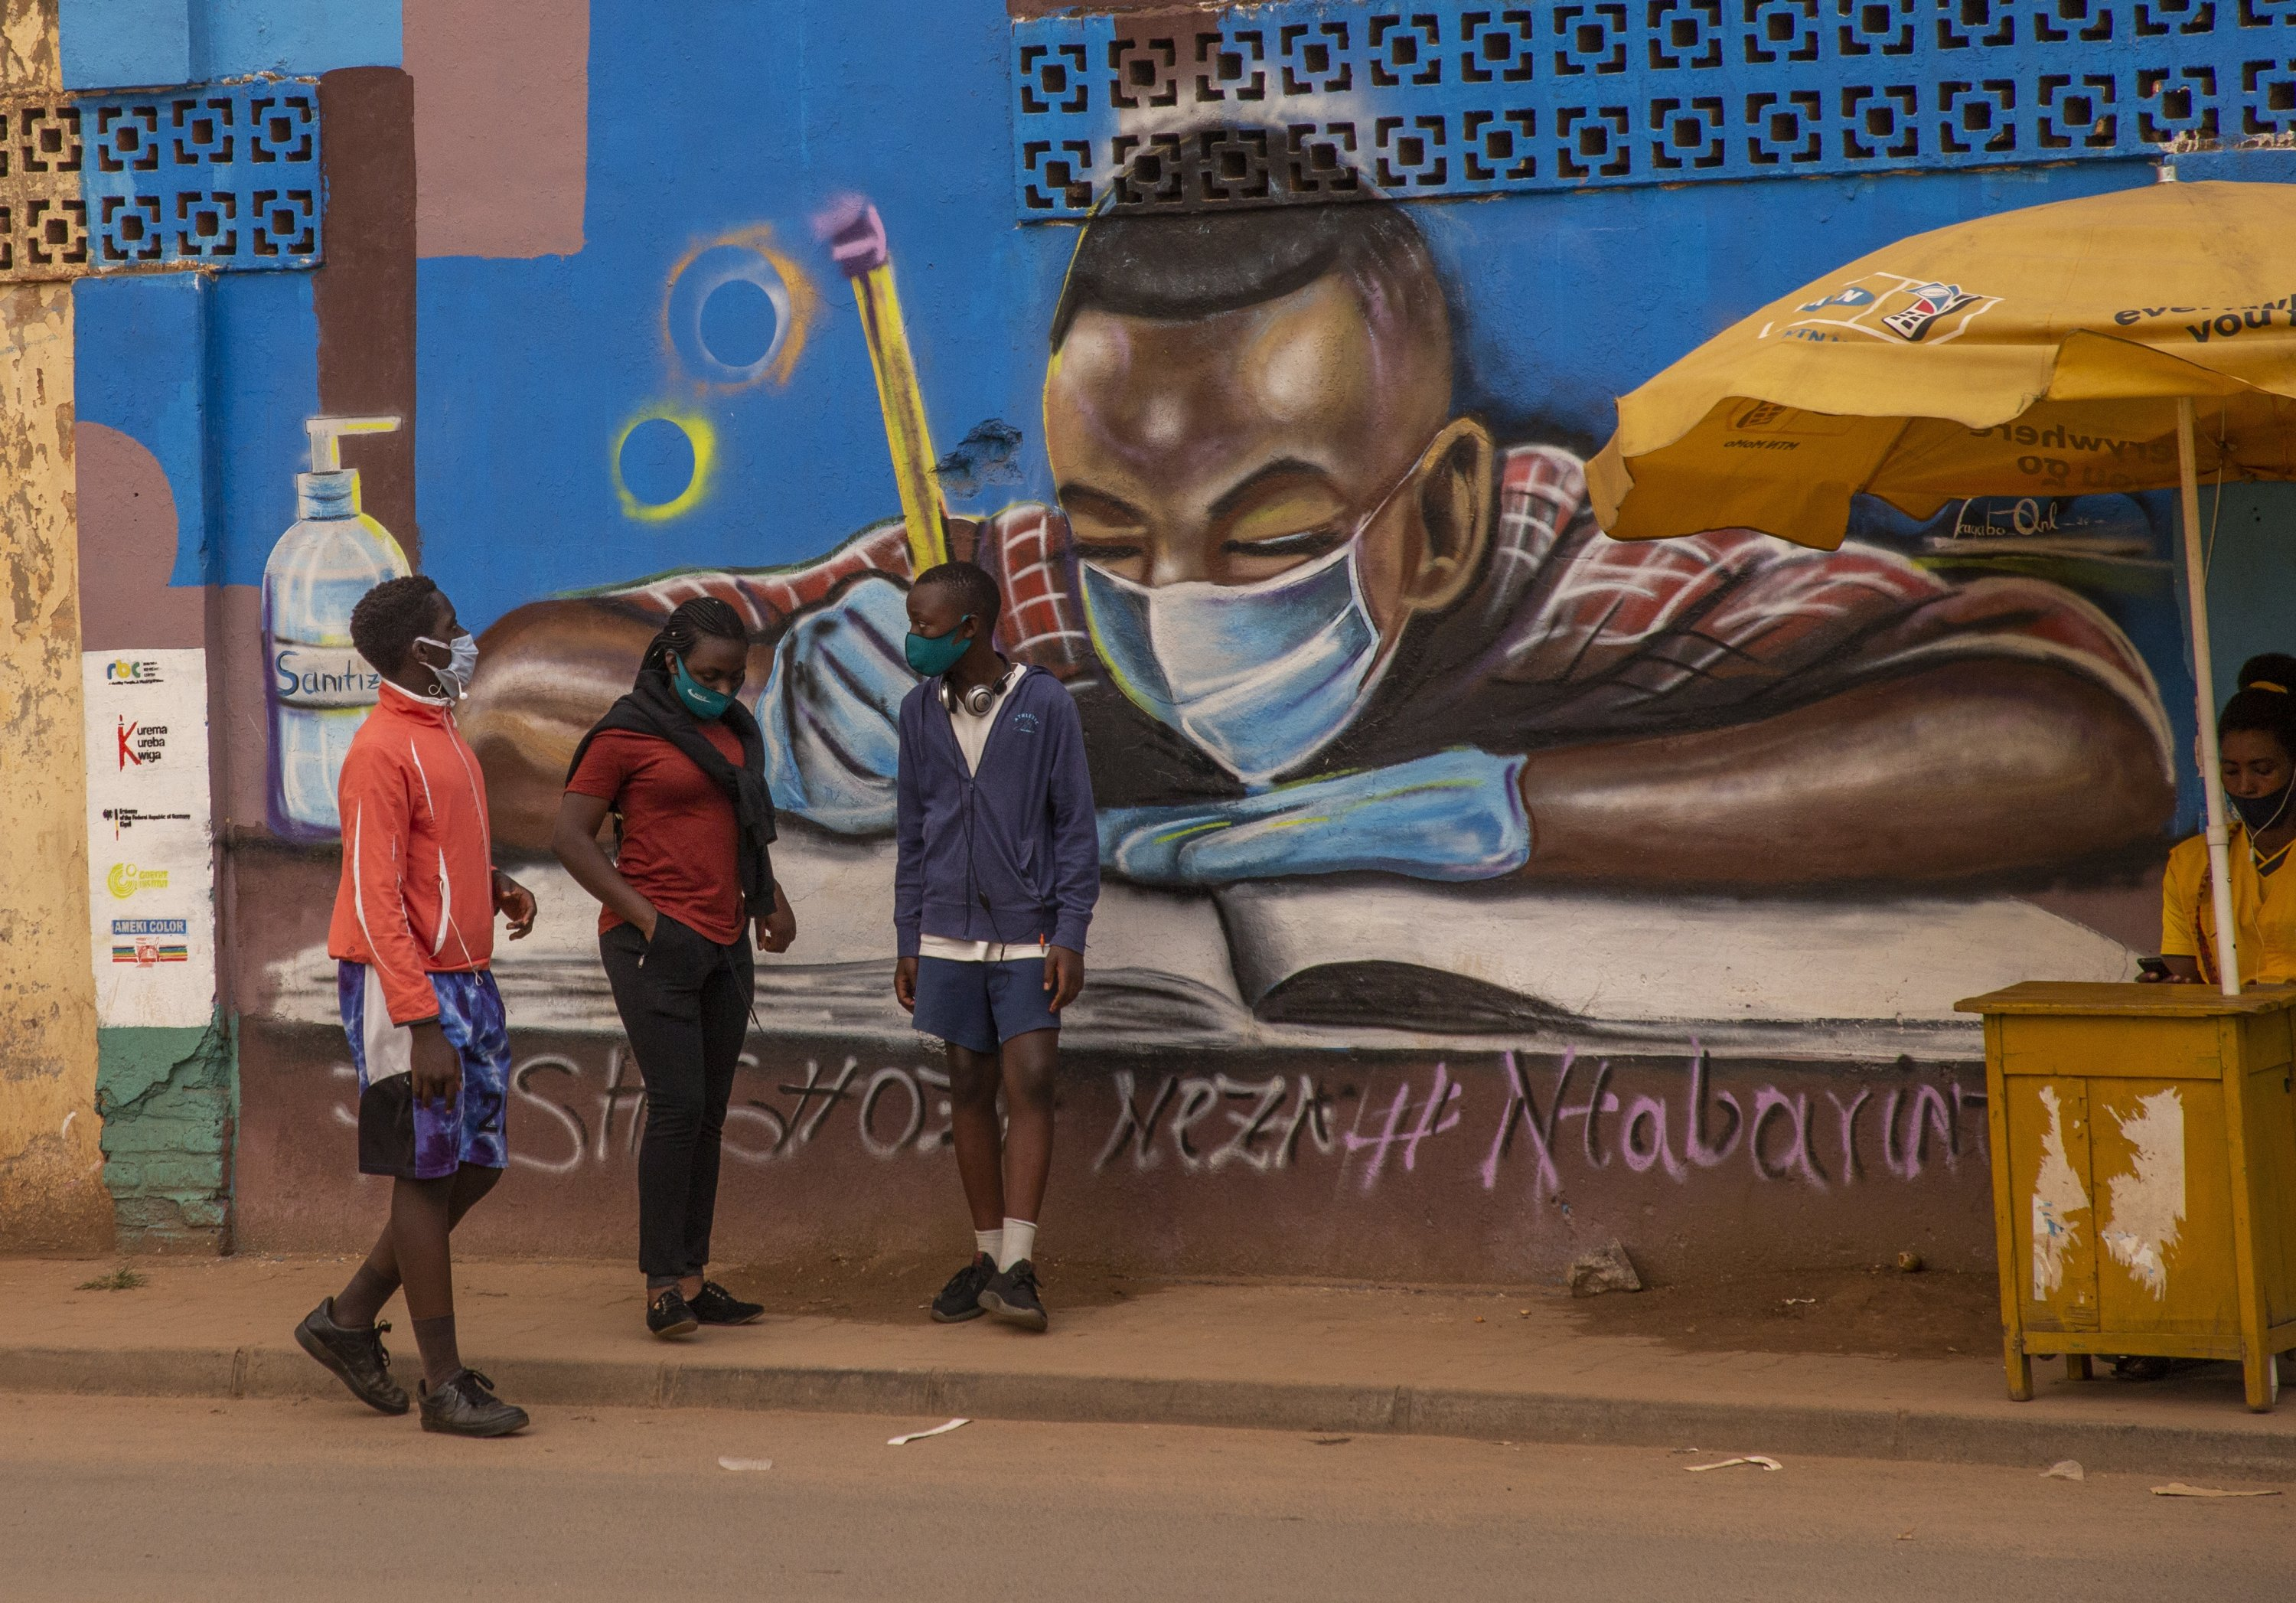 People are seen in front of another mural about the virus in Kigali, central Rwanda, Sept. 11, 2020. (AA PHOTO)